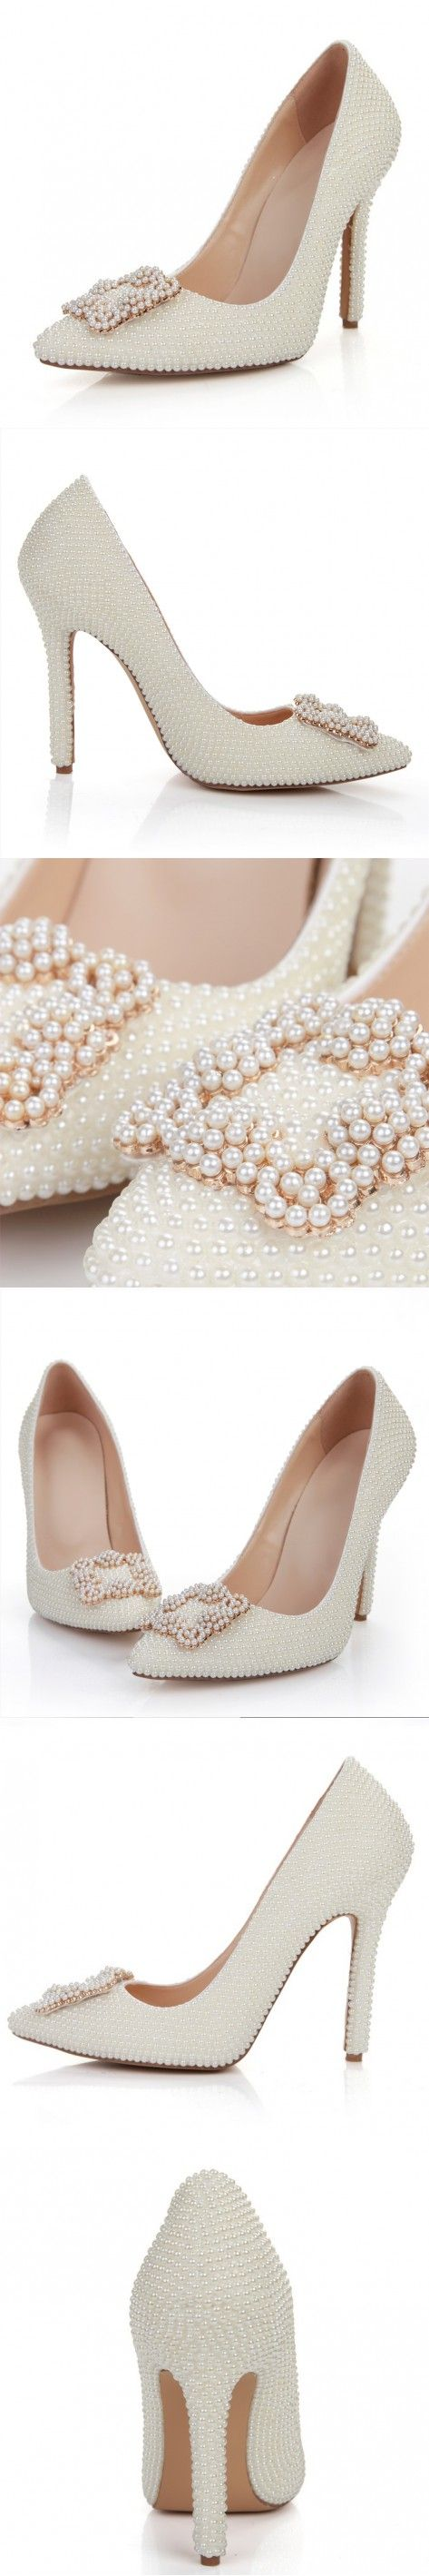 "Sexxy High Heels Bride Shoe Rubber Soled Crystal Heels Pearls Girls Closed Toed ""Shoes Sand Iron Shoes Or Boots, Cork Bounders"" Antique Little Girls Bridesmaid Cha Cha Sexiest Light Up Camouflage Thick High Heel Stiletto Sequined Metallic Weddings Shoe Close Toed Ankle Heel Booties."